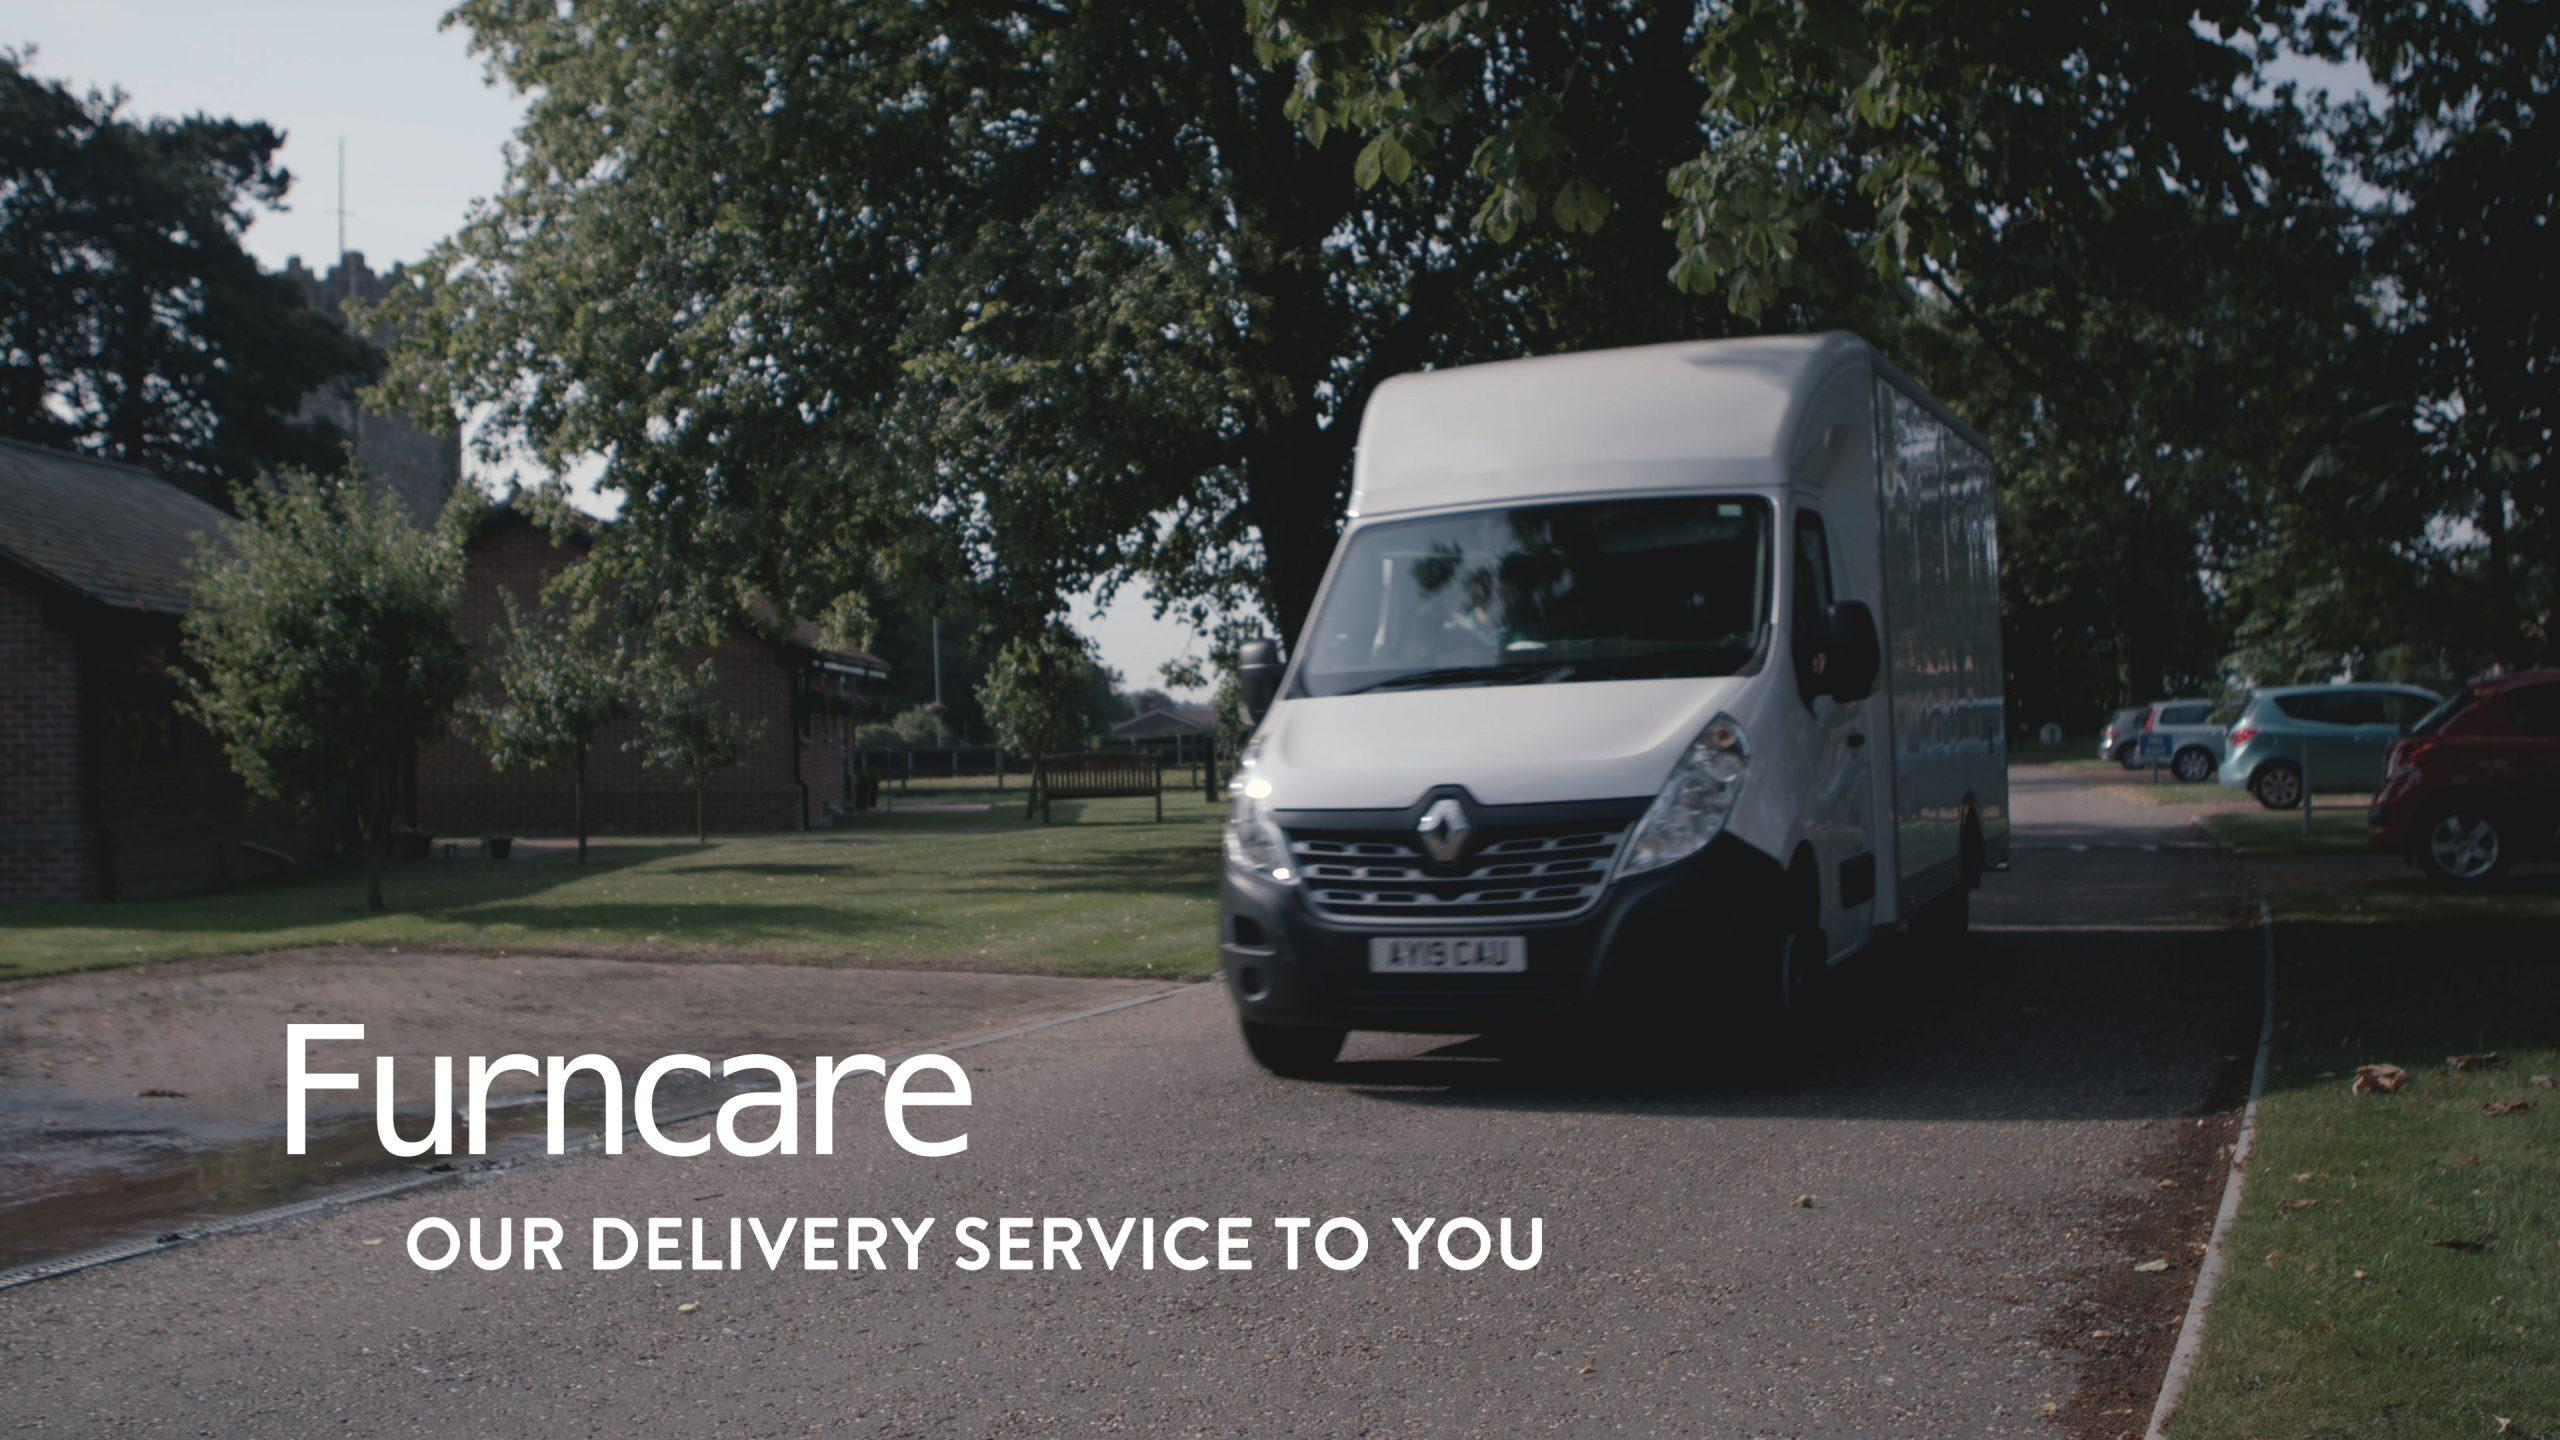 The Furncare Delivery Service